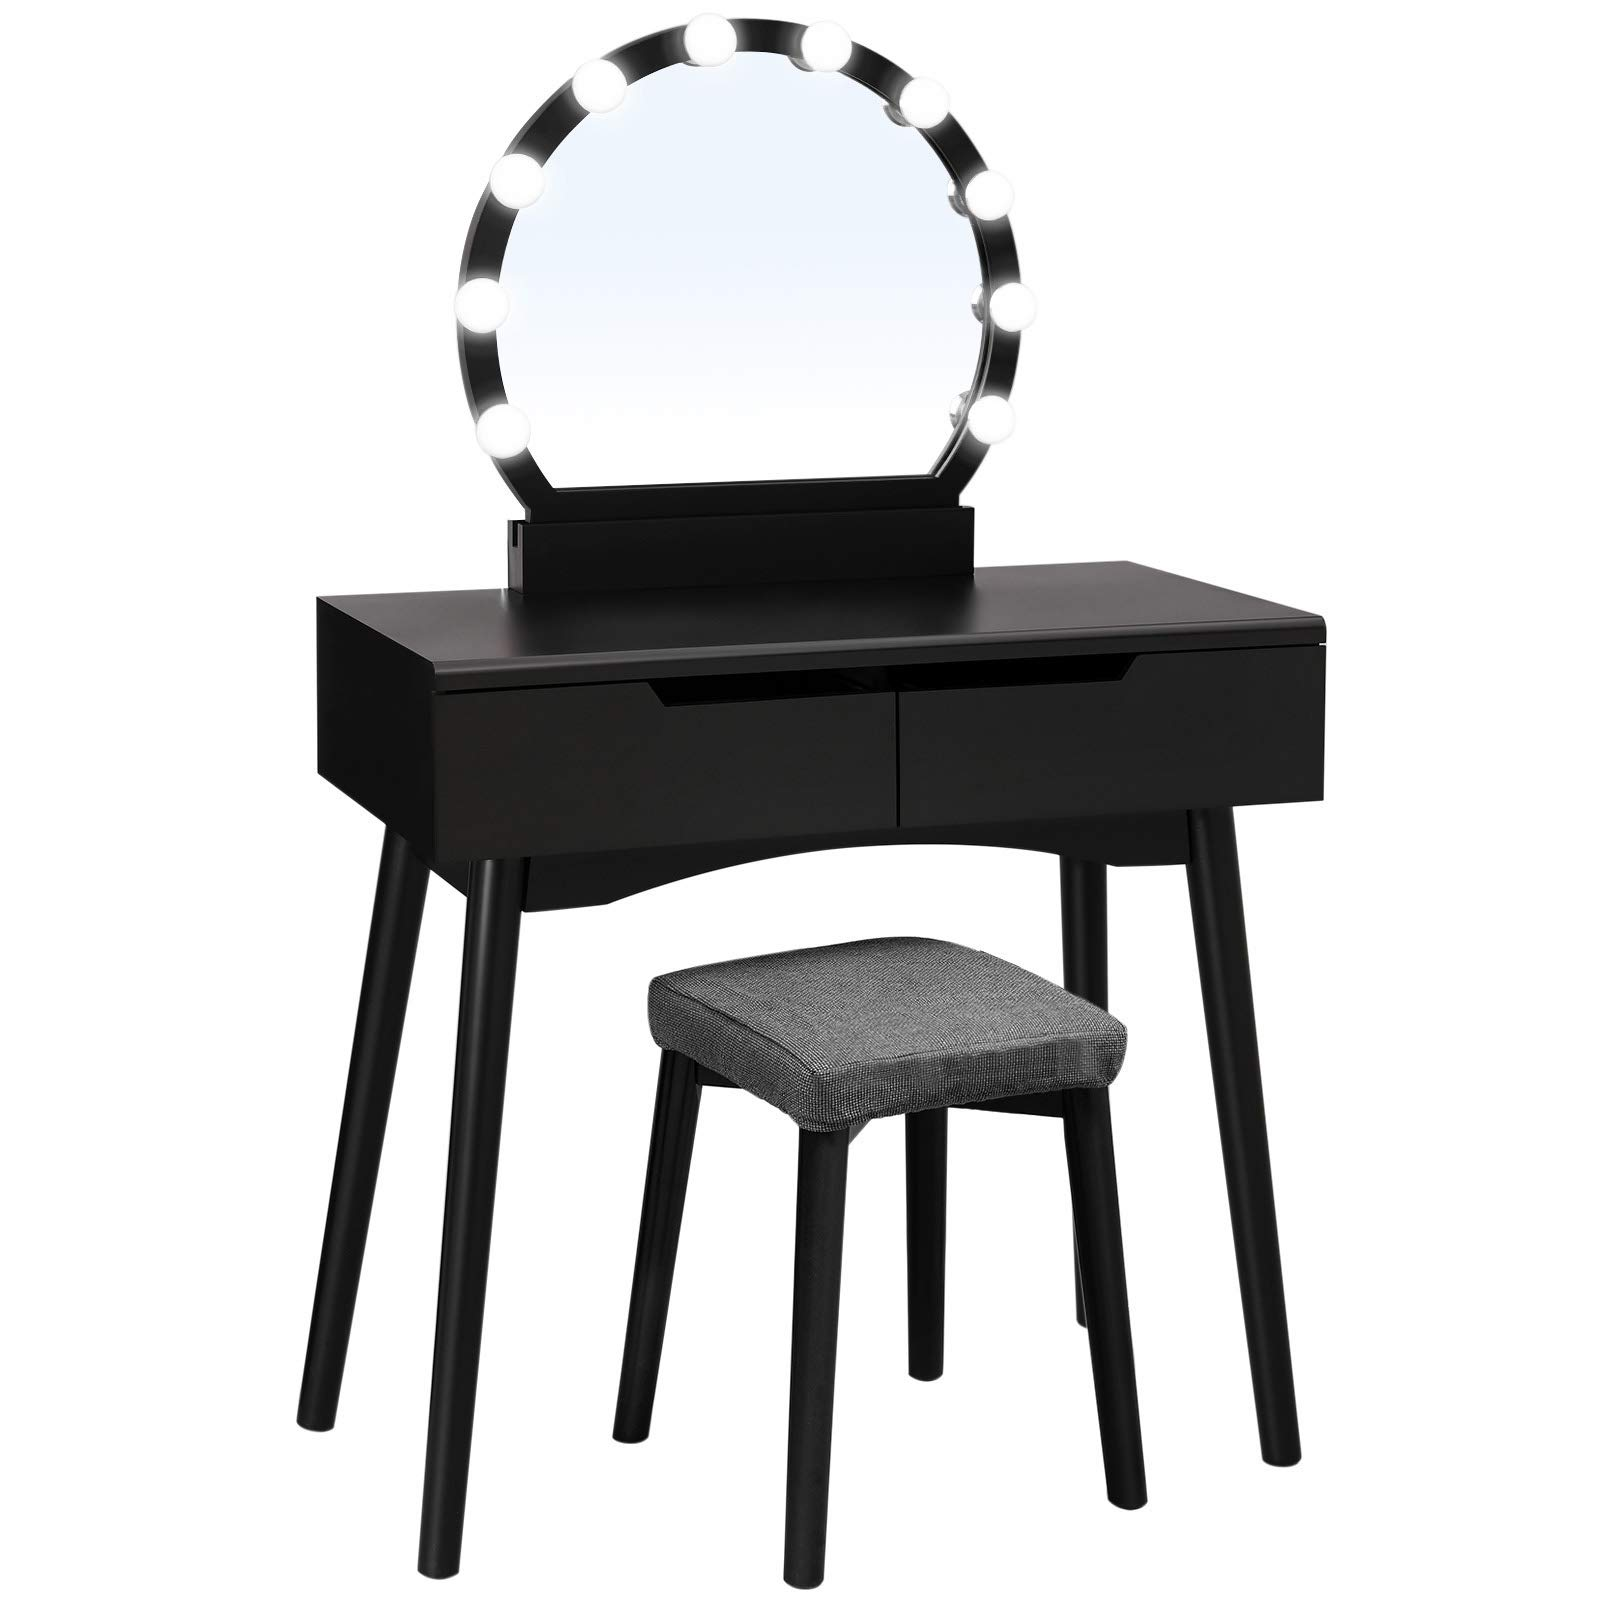 VASAGLE Vanity Set with 10 Light Bulbs and Touch Switch, Dressing Makeup Table Desk with Large Round Mirror, 2 Sliding Drawers, 1 Cushioned Stool for Bedroom, Bathroom, Black URDT11BL by VASAGLE